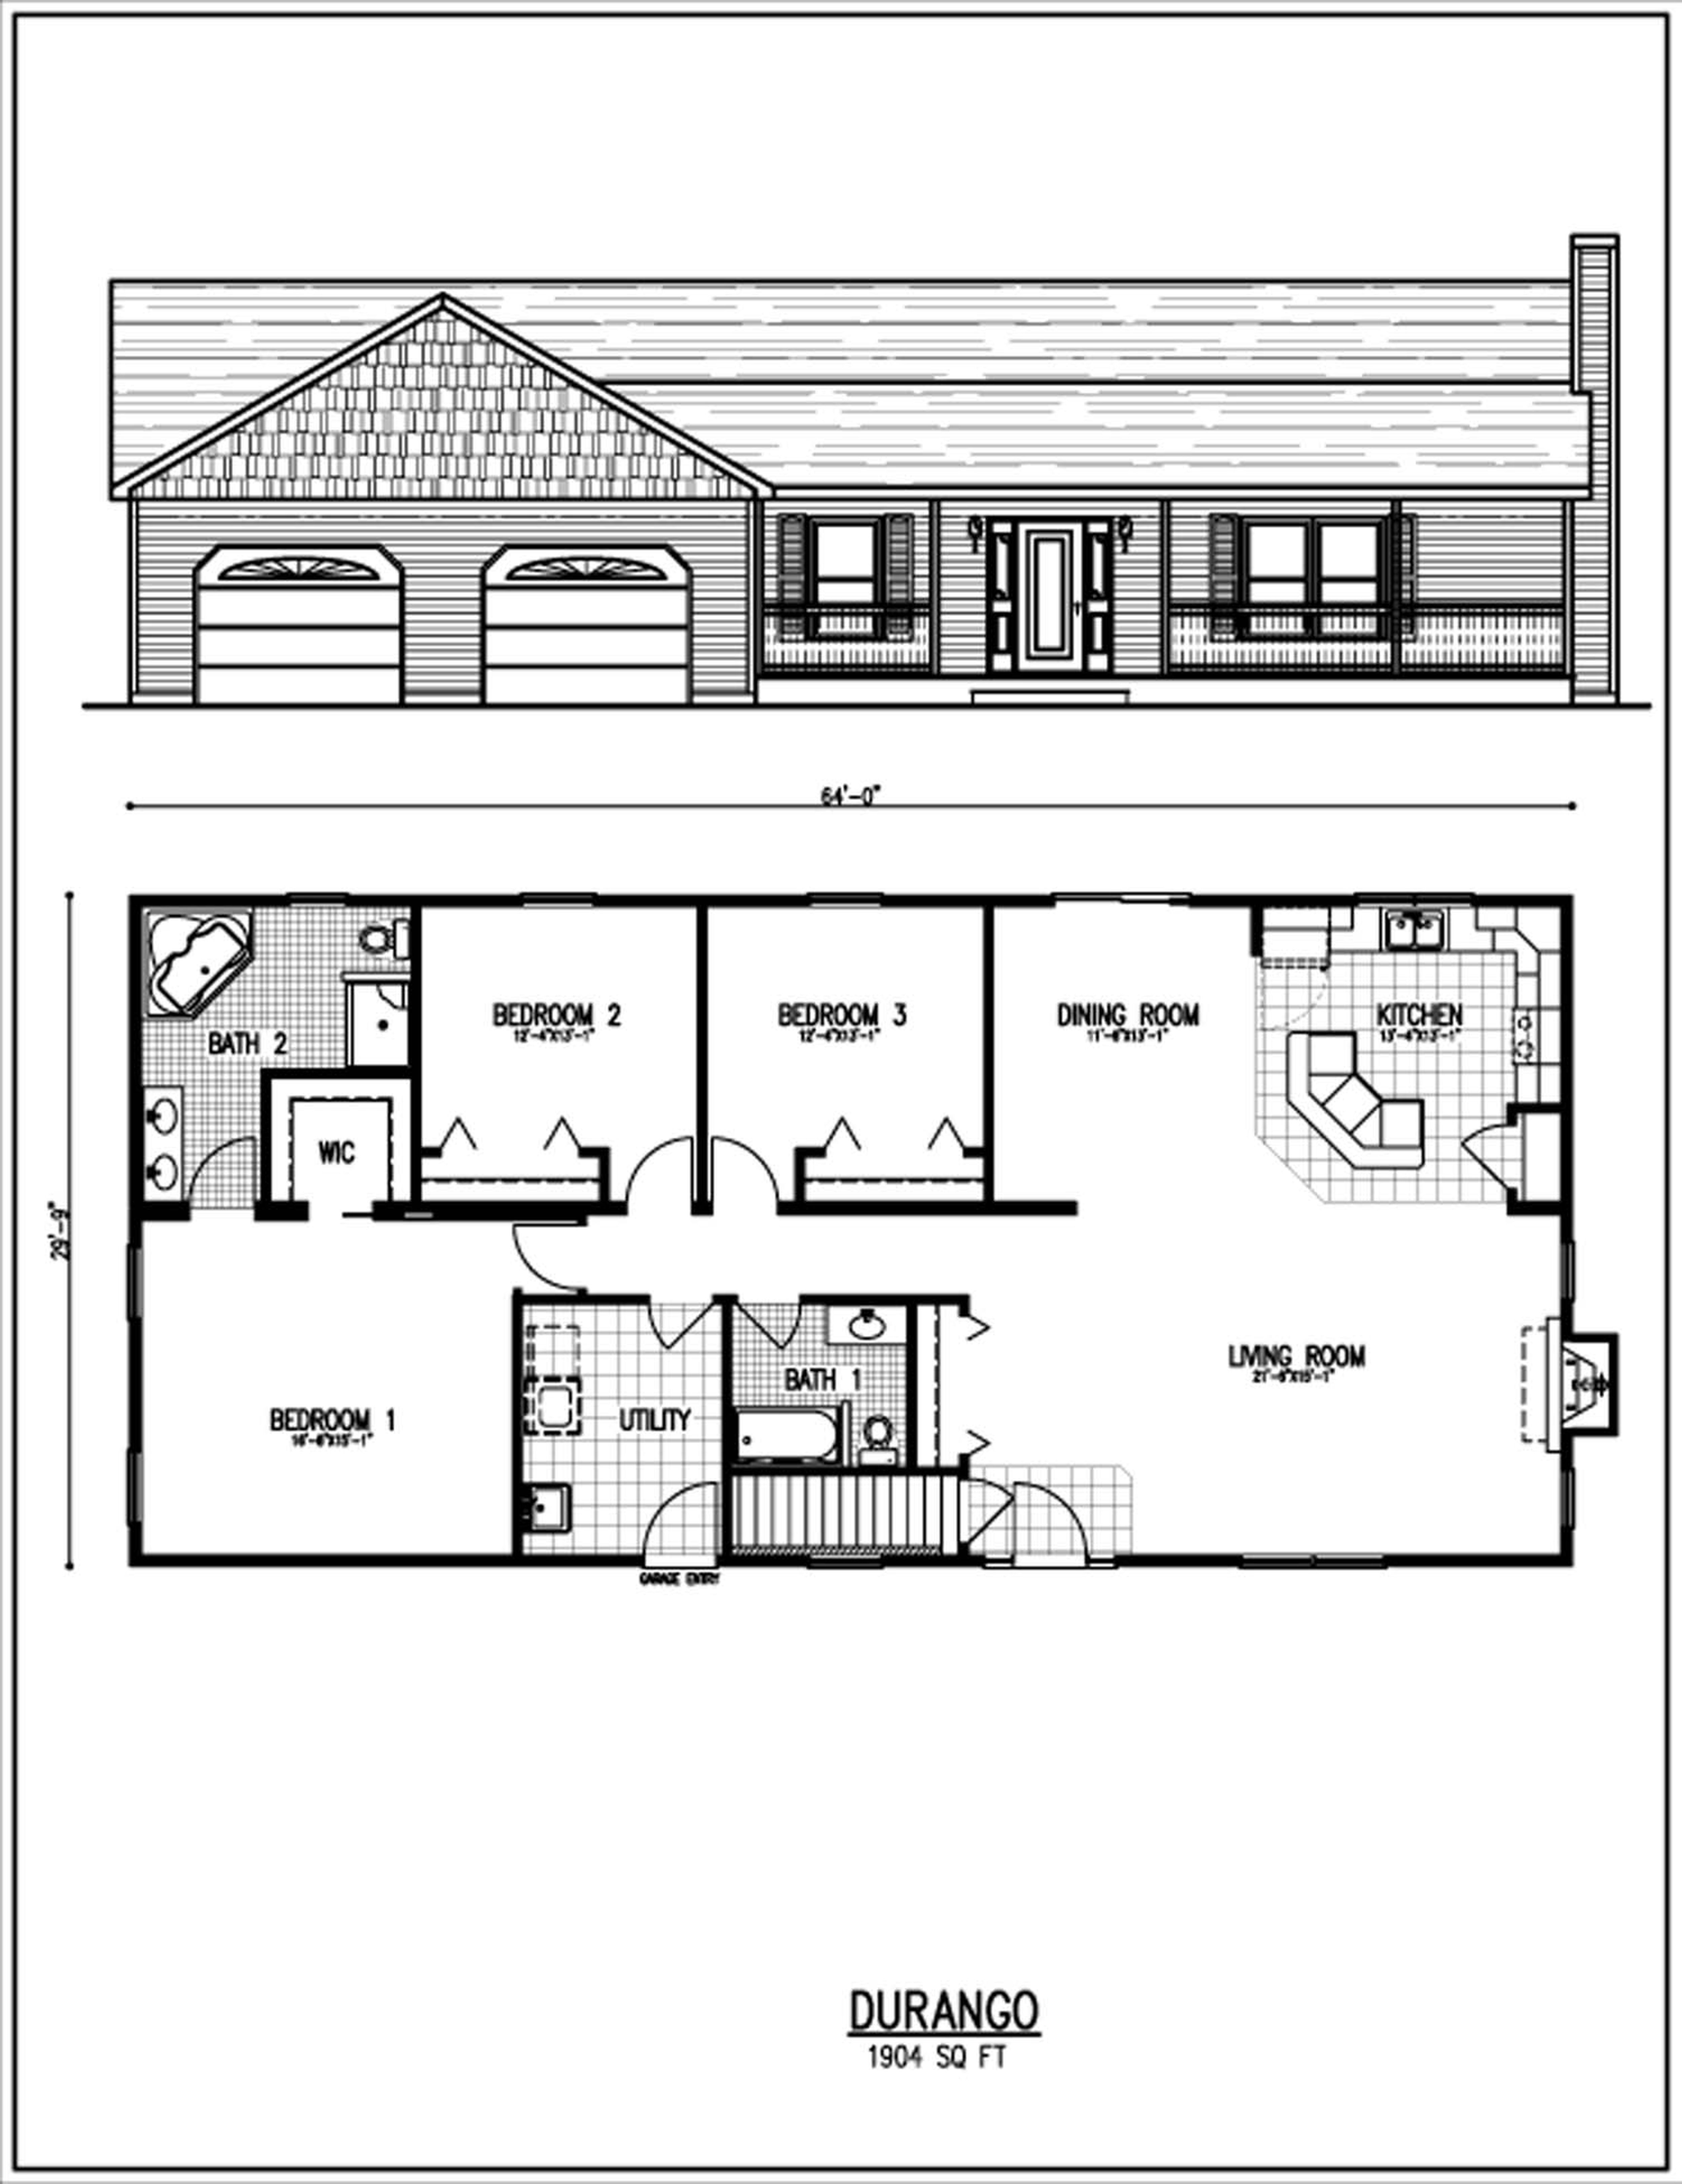 Betz house plans with large kitchen frank house plans designs ideas - Free Online Full House Decoration Games House And Home Design